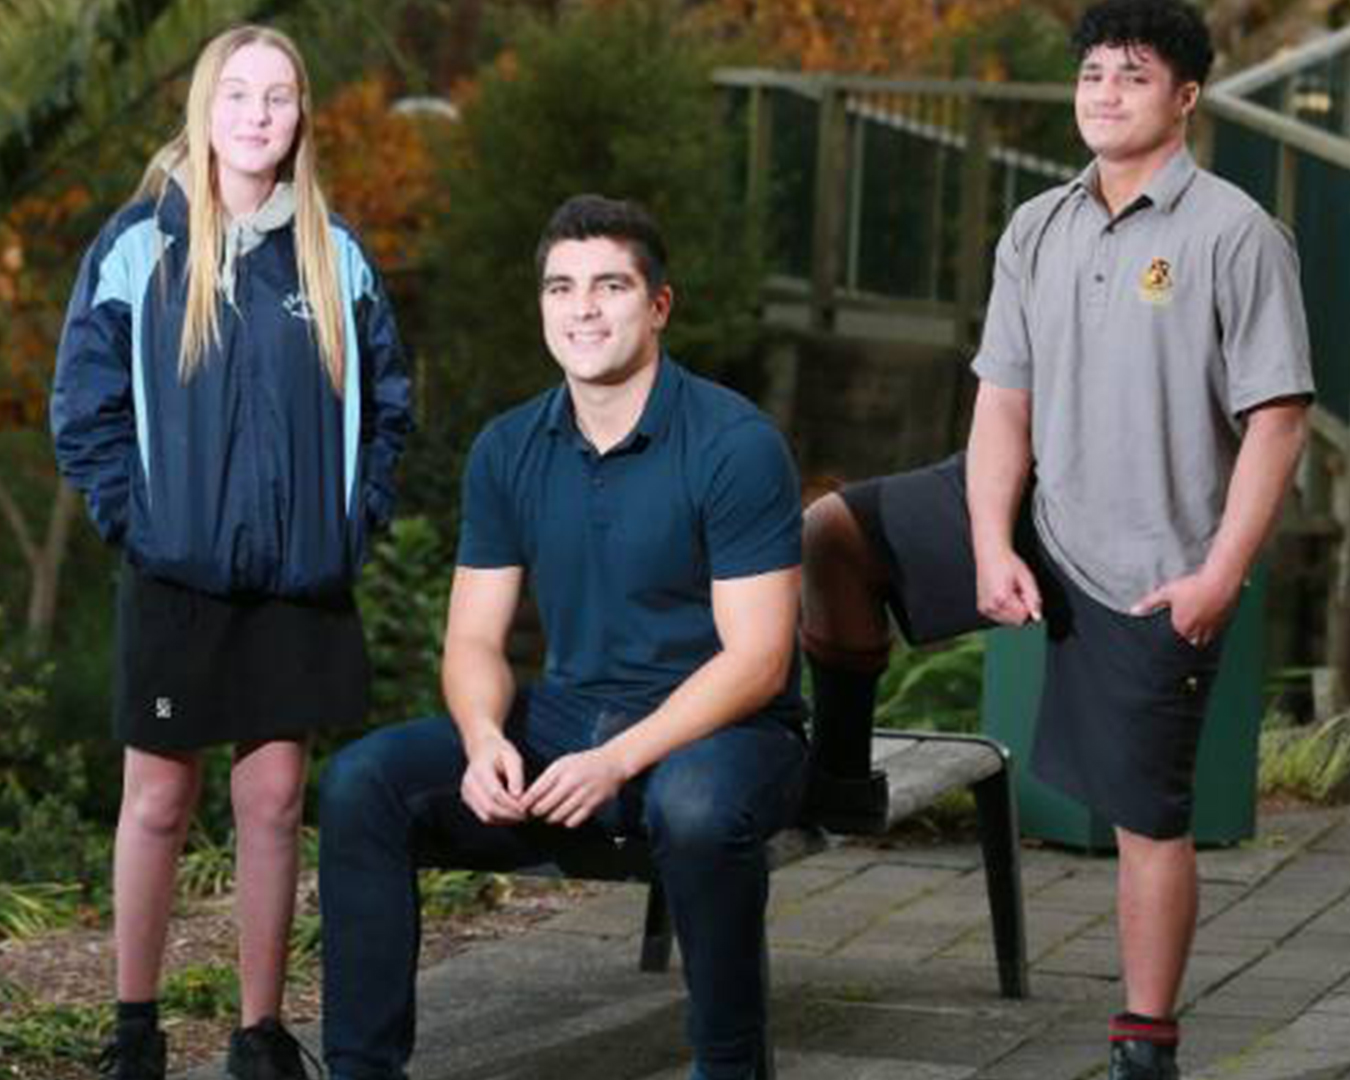 Sport as self-development: Hamilton teens get a hand up through The Waterboy charity -